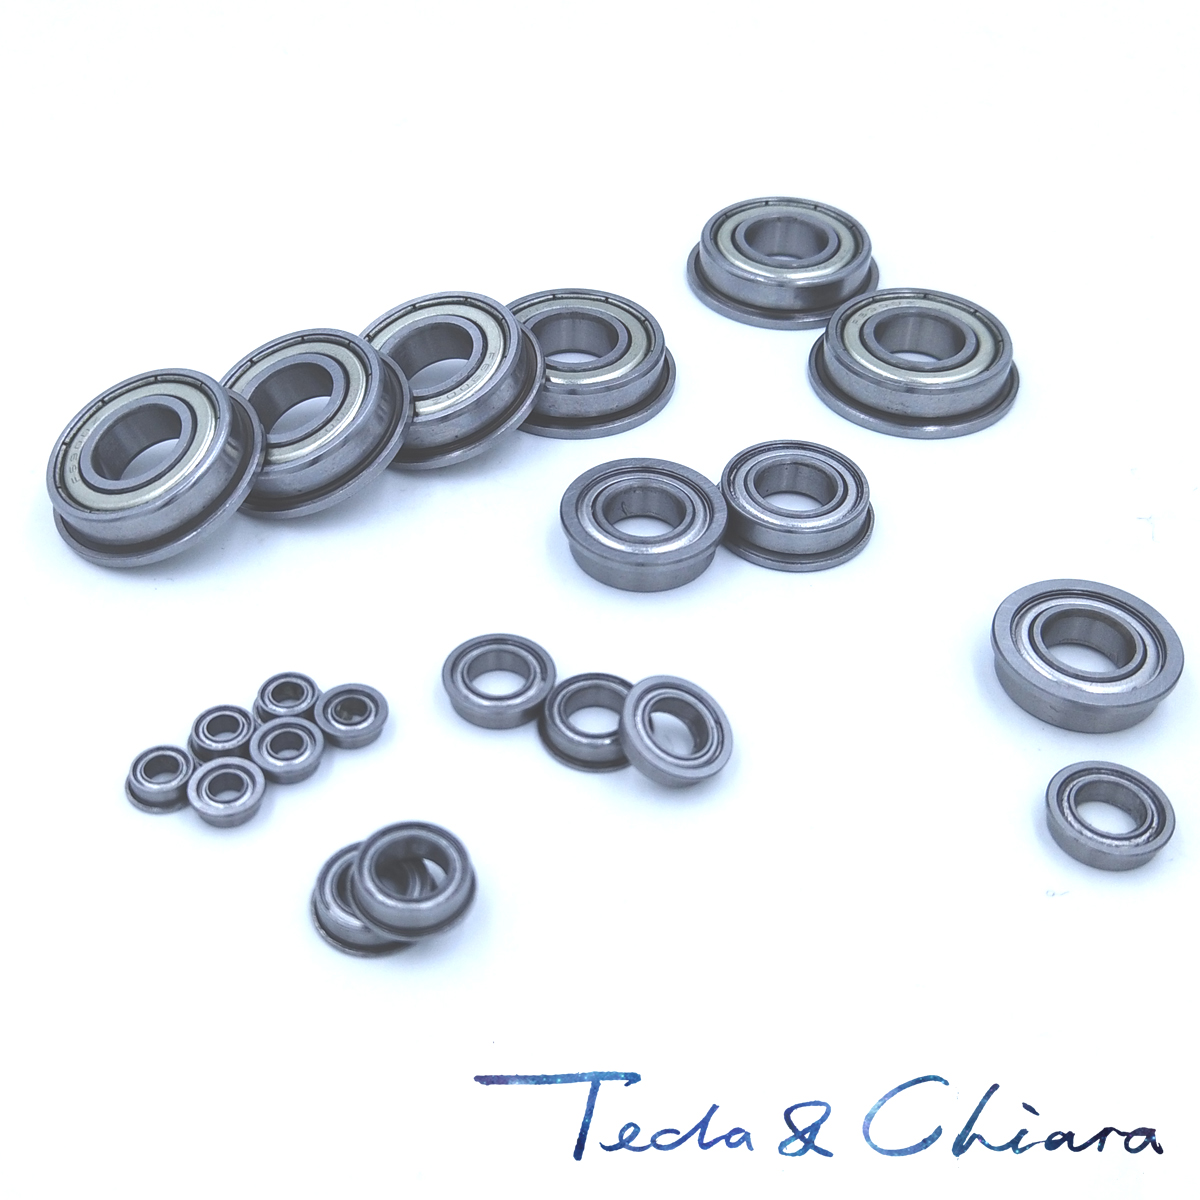 10Pcs 1Lot F625 F625-ZZ F625ZZ F625-2Z F625Z Zz Z 2z Flanged Flange Deep Groove Ball Bearings 5 X 16 X 5mm